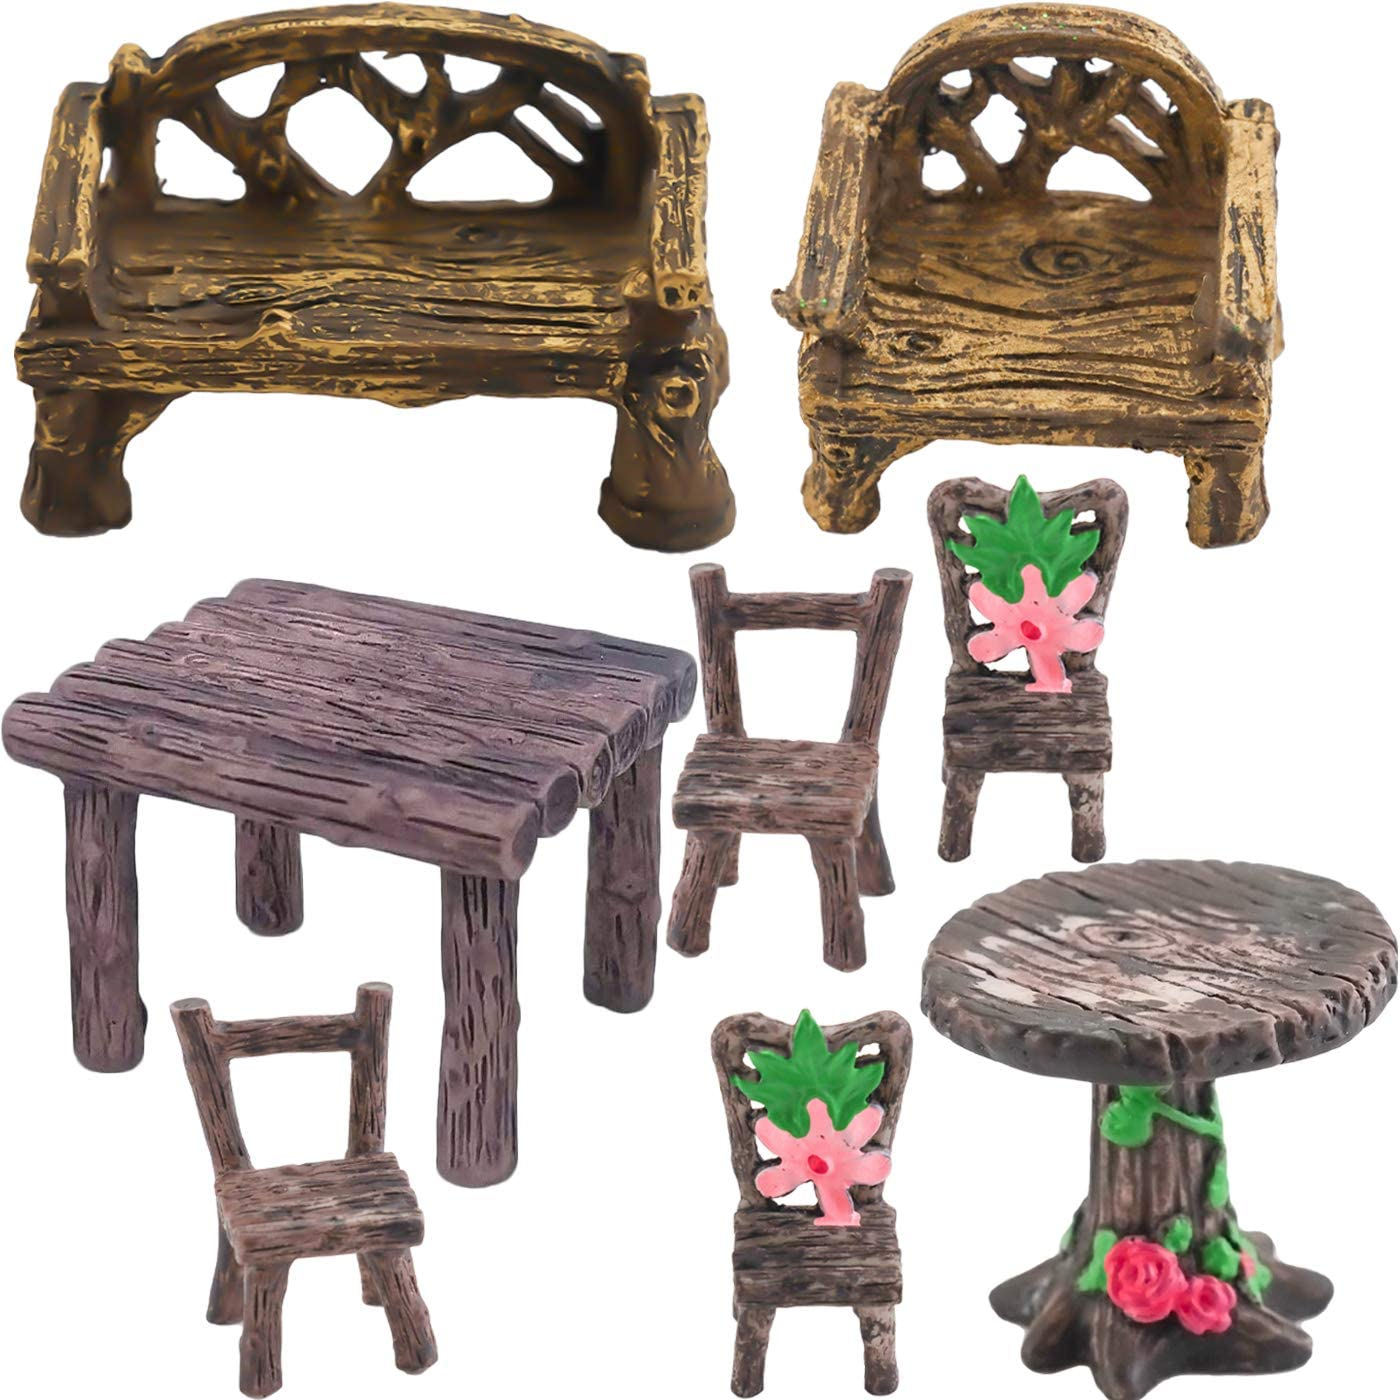 LeonBach 8 Pcs Miniature Tables and Chairs, Fairy Garden Accessories Miniature Garden Bench Decorations Fairy House Furnitures Set